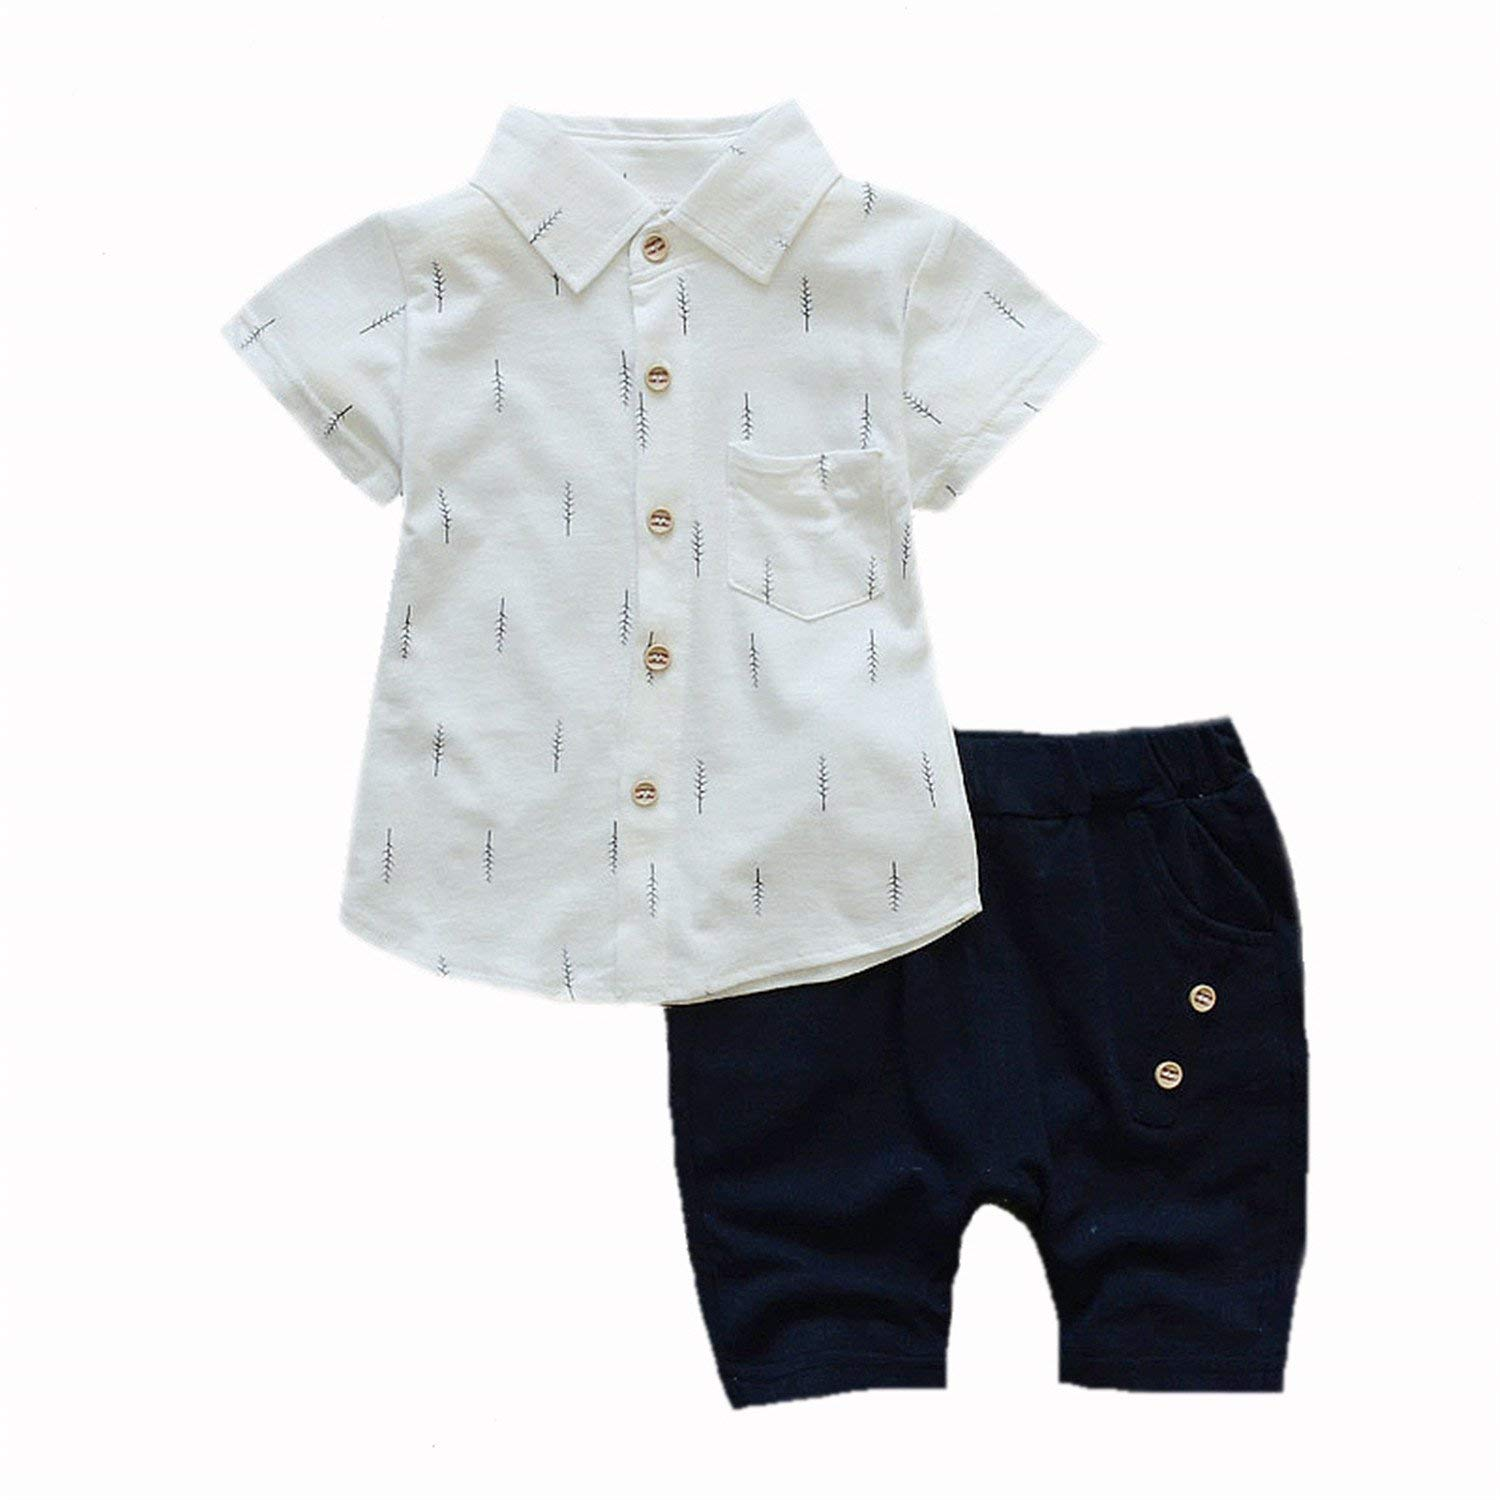 e33af878655d6 Get Quotations · Mandaartins Baby Boys Summer Set Print Shirt + Short Pants  Toddler Shorts